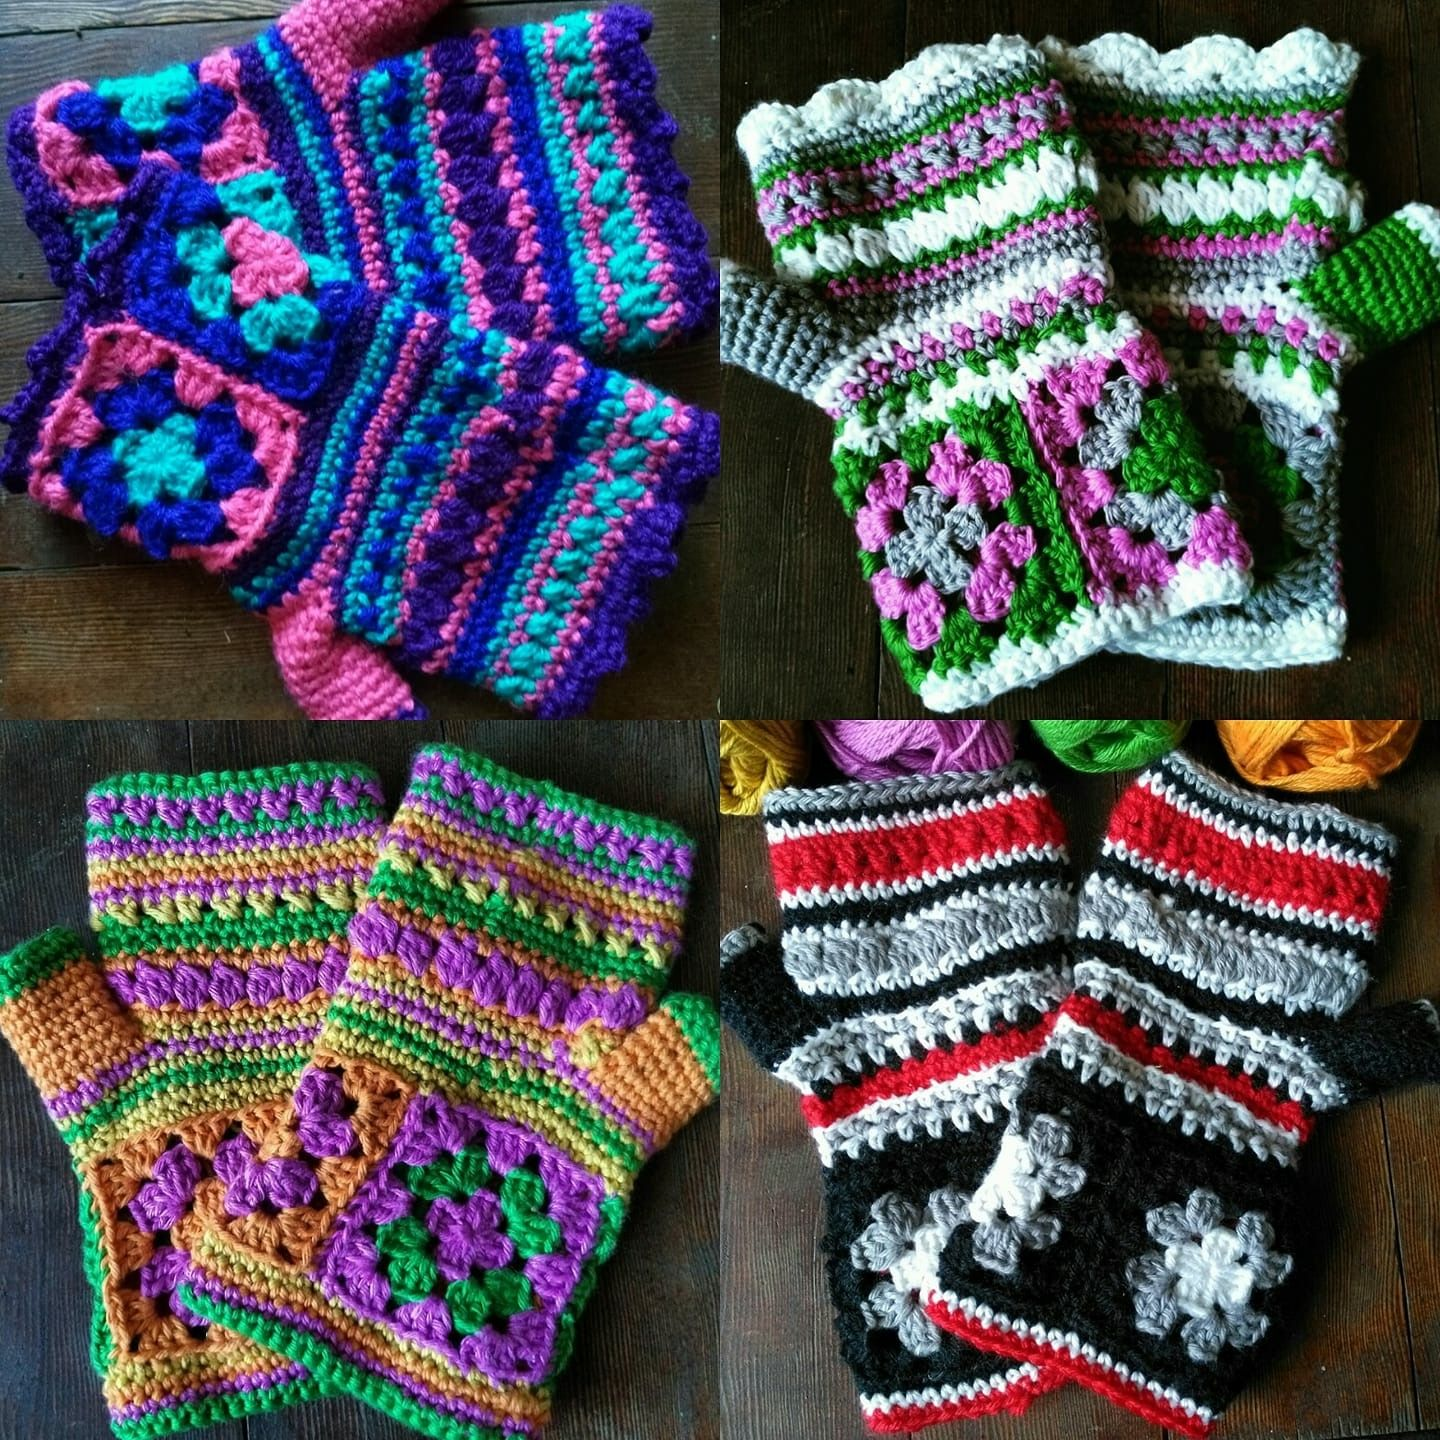 Knitted wedding decorations  Granny square gloves  Crochet  Pinterest  Granny squares Crochet